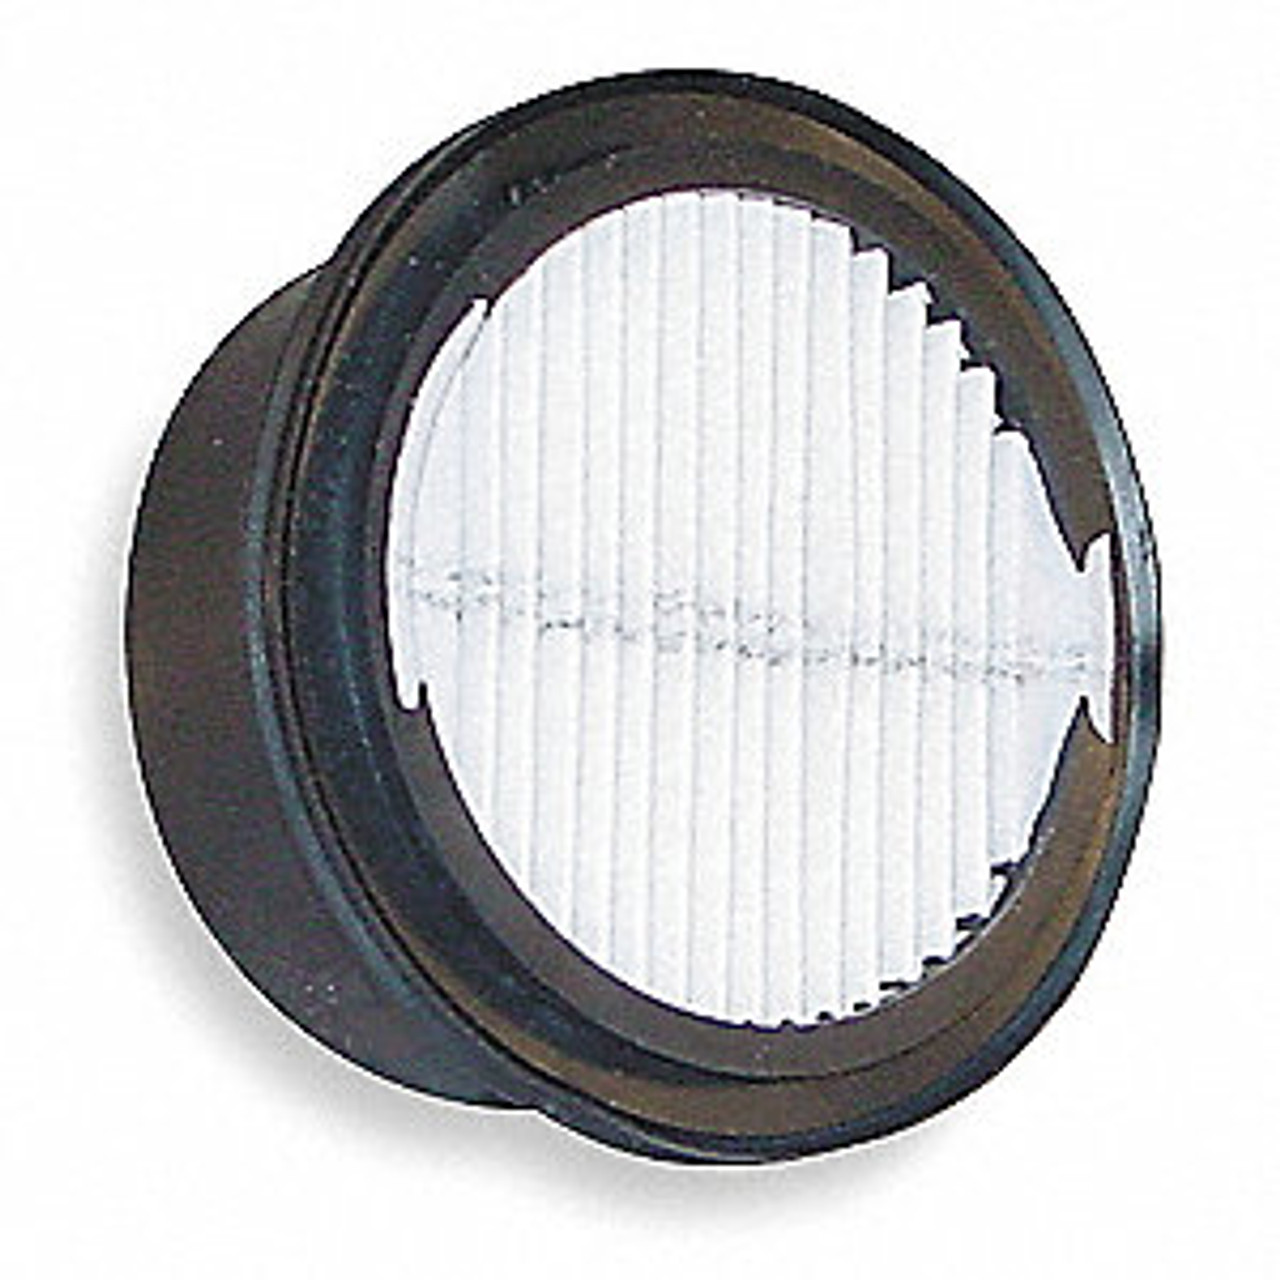 Kasco KM-60 / 120 Air Filter Element Replacement